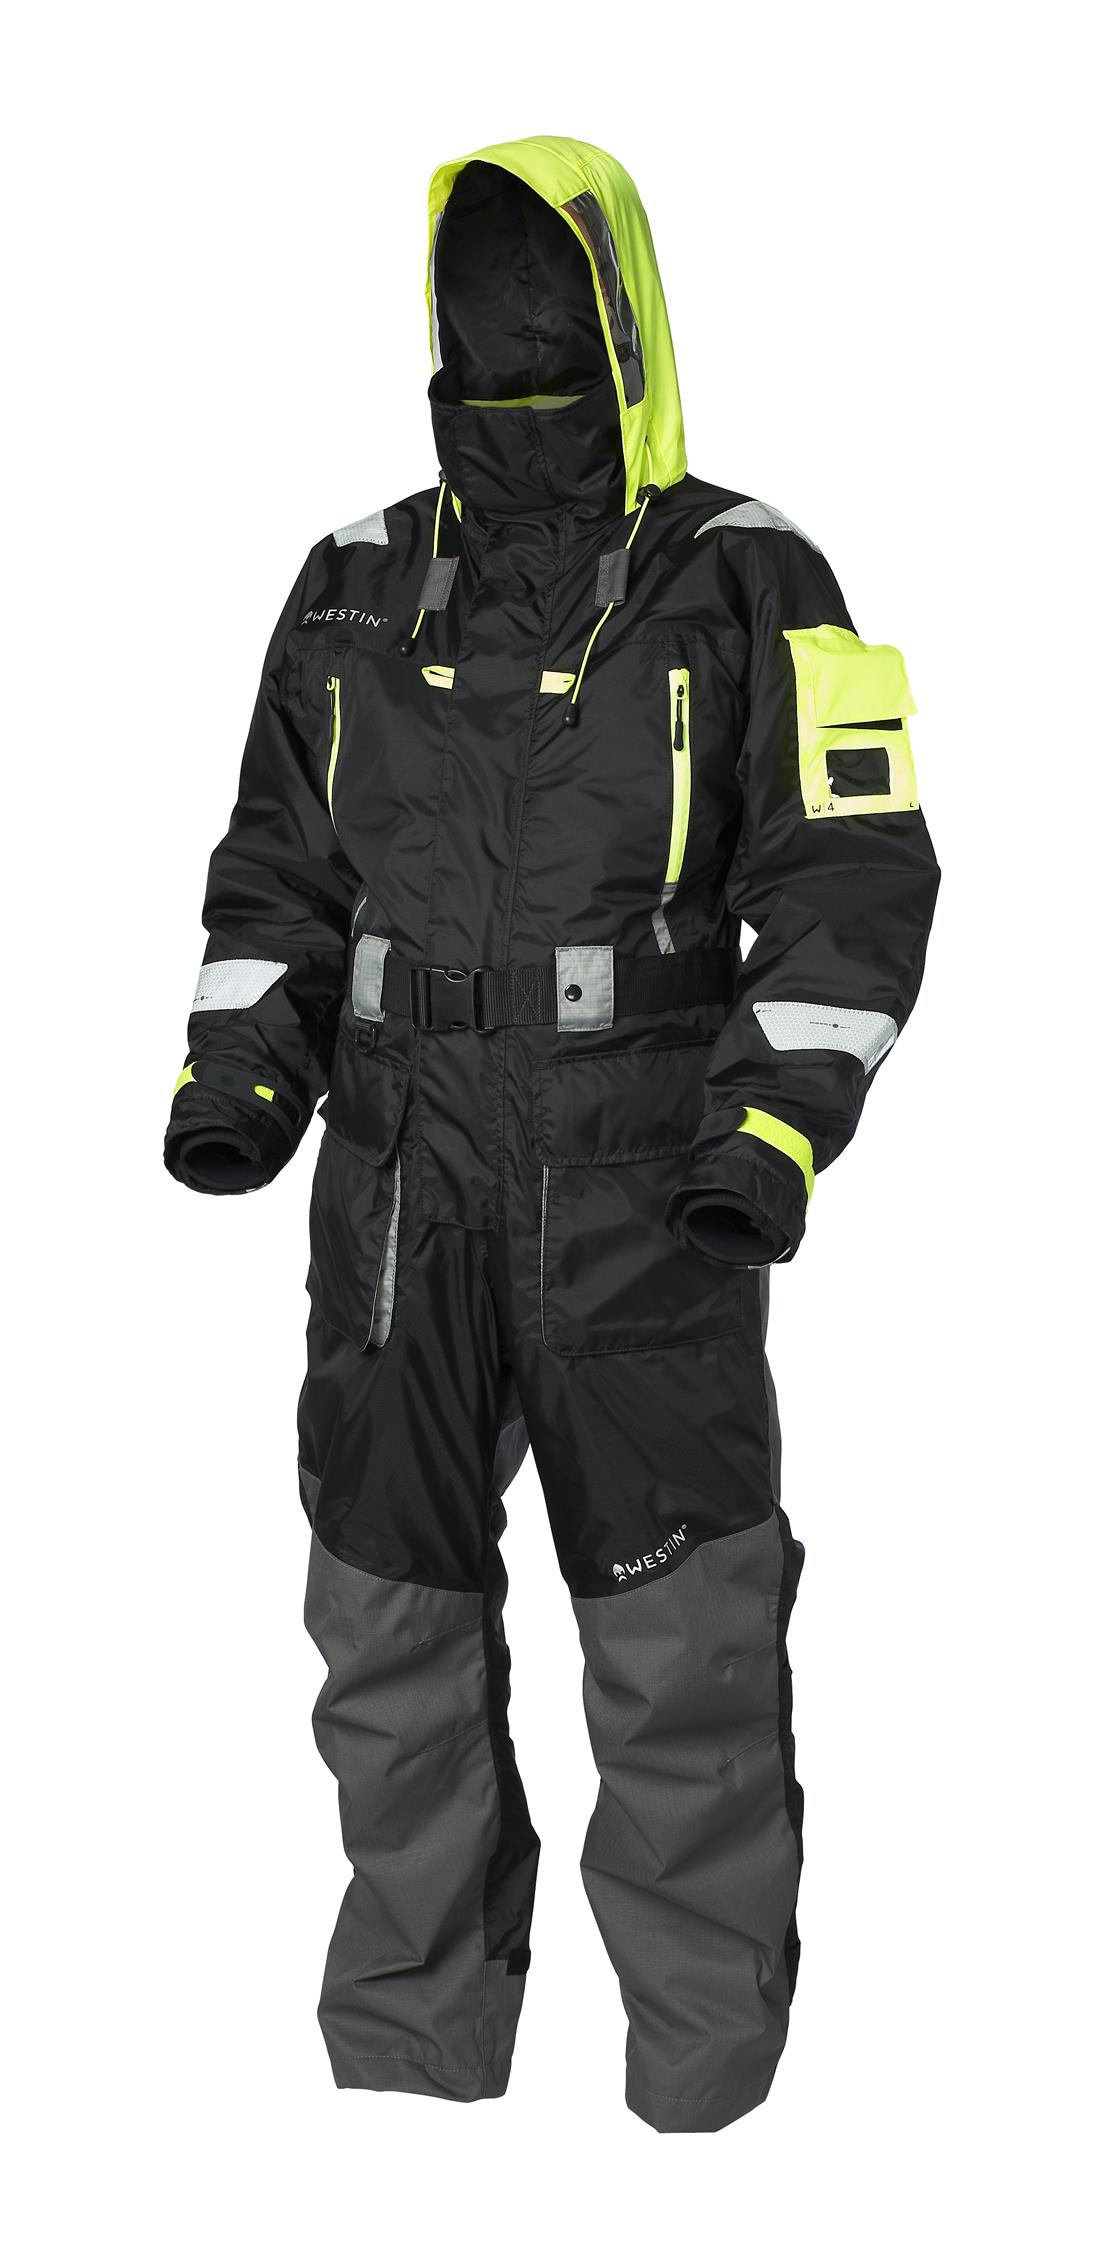 Waterproof Suit Westin W4 JETSET LIME